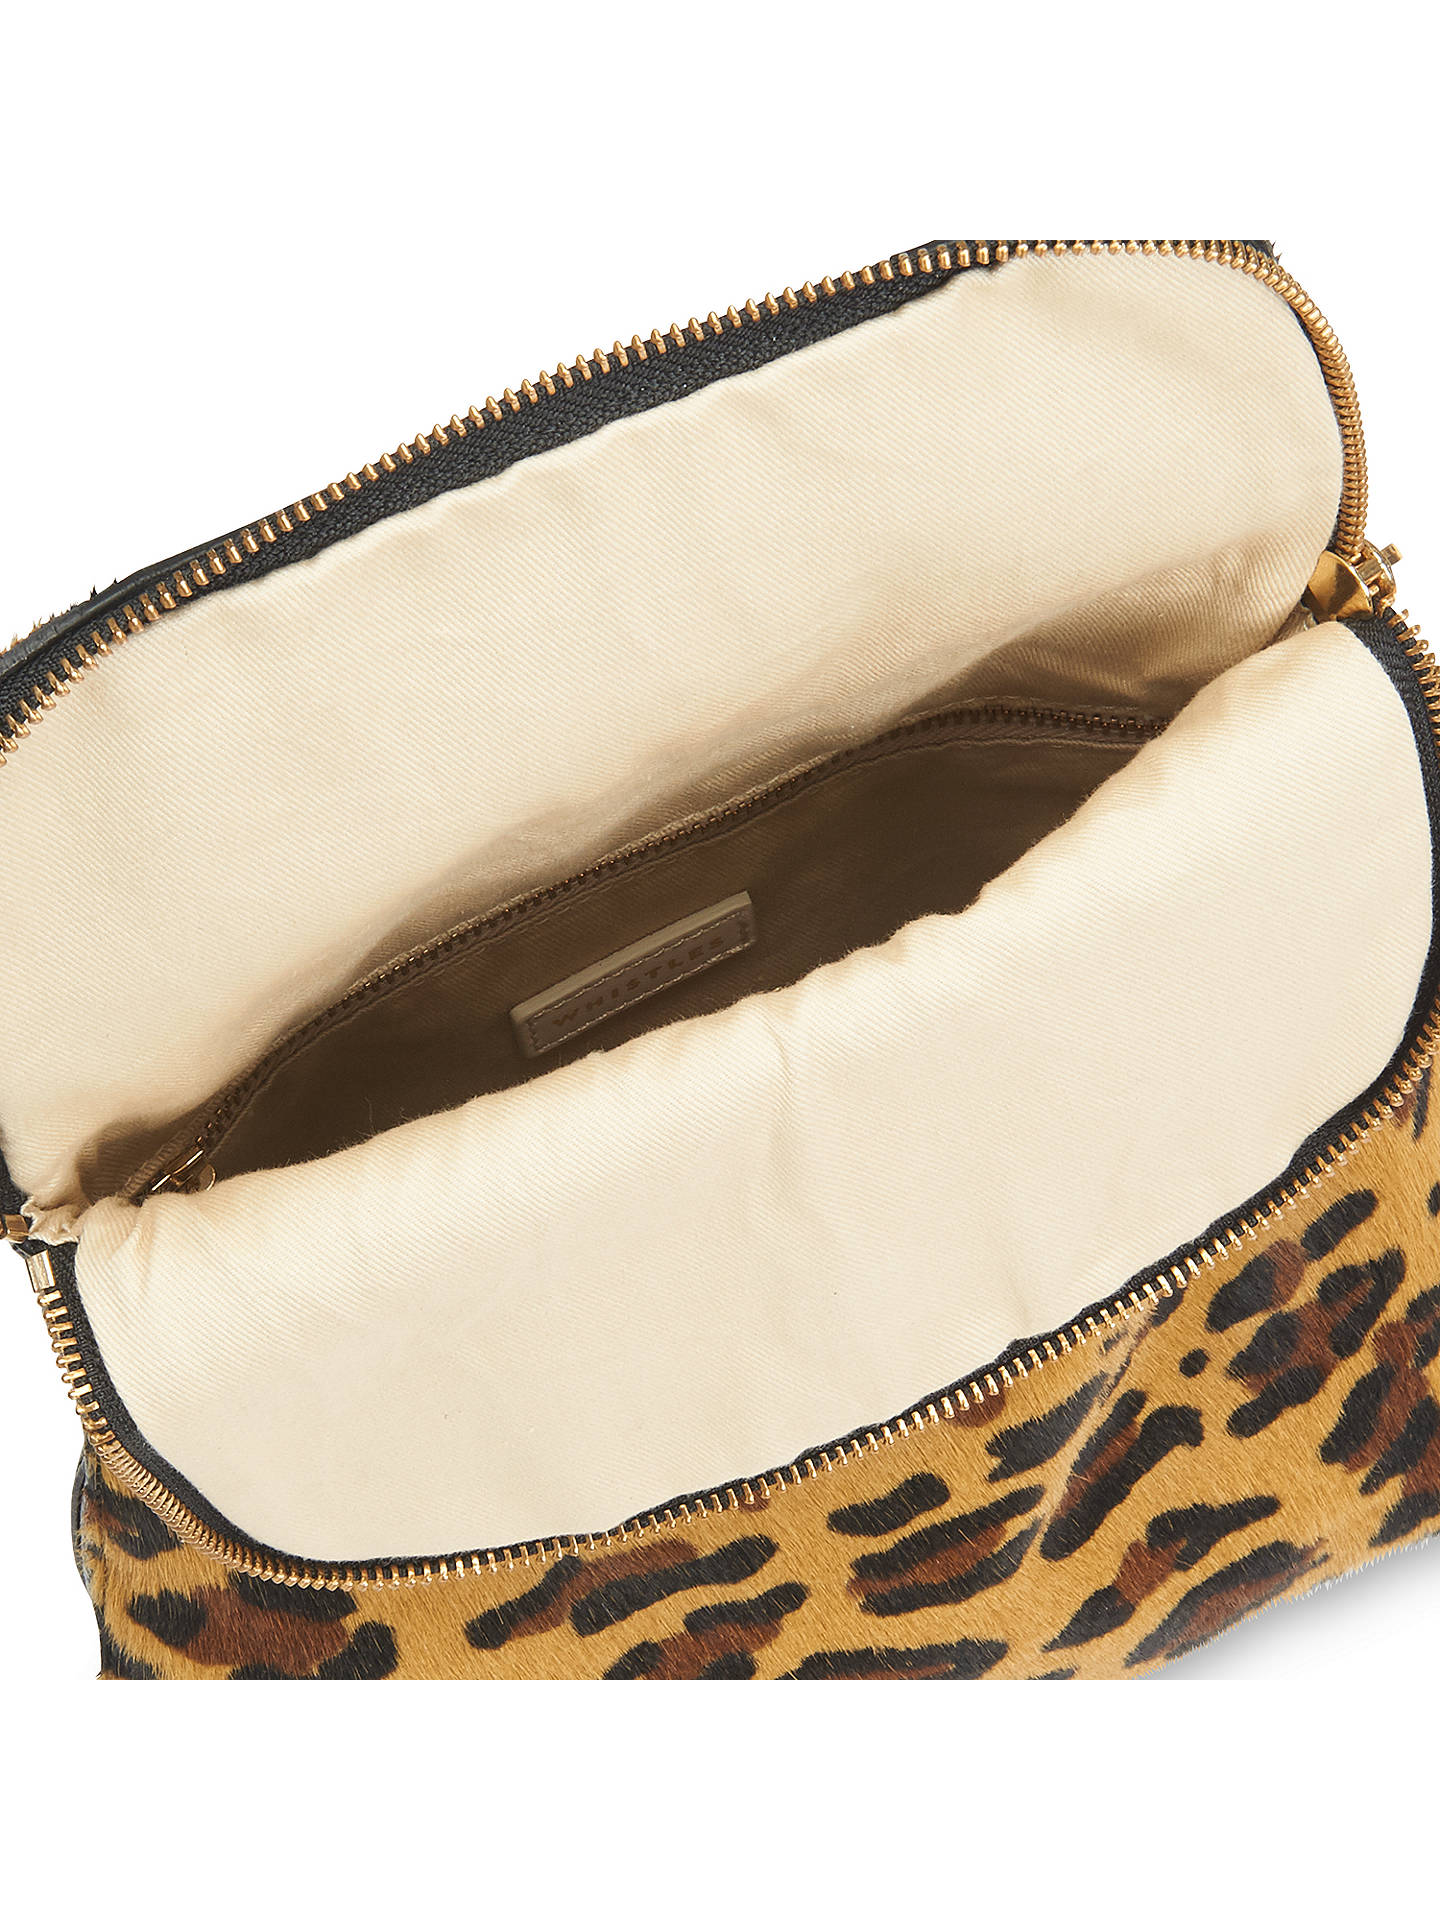 6c3a5786936b ... Buy Whistles Mini Verity Backpack, Leopard Print Online at  johnlewis.com ...